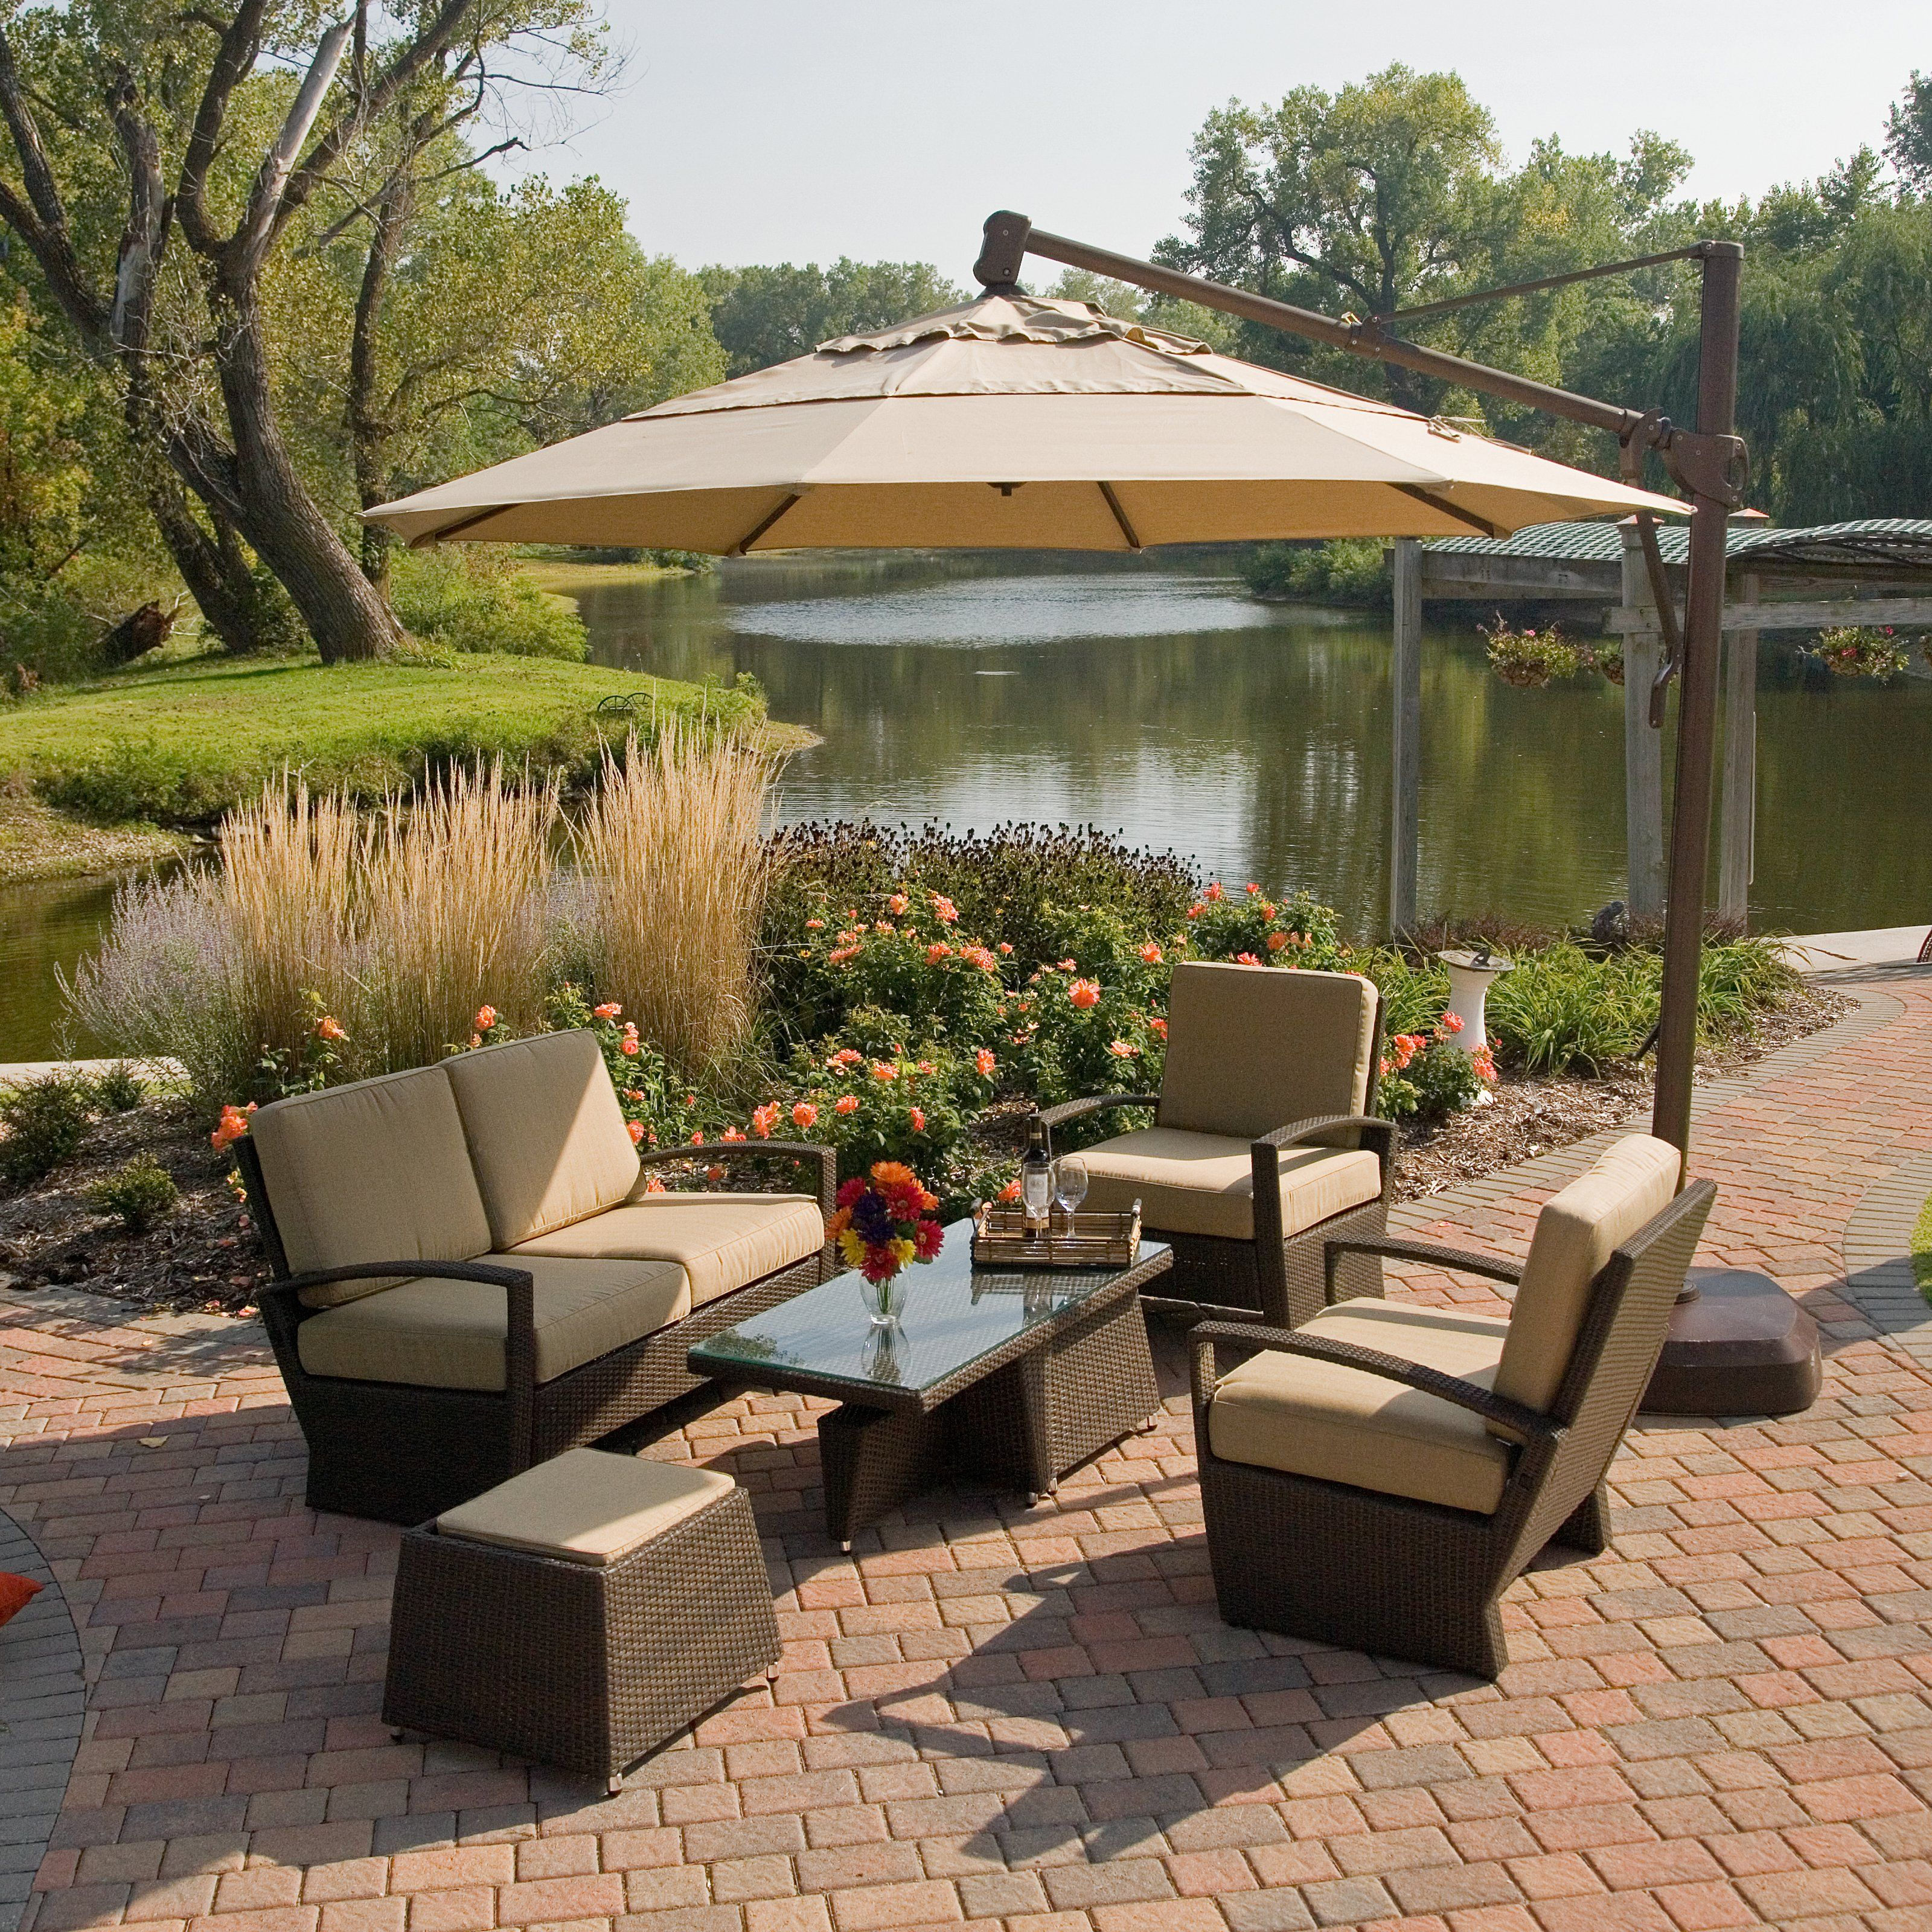 Treasure Garden Sunbrella Rotating Offset Umbrella With Tilt And Base    With Its Sleek Bronze Finish And Handy Offset Design, The Coral Coast 13 Ft.